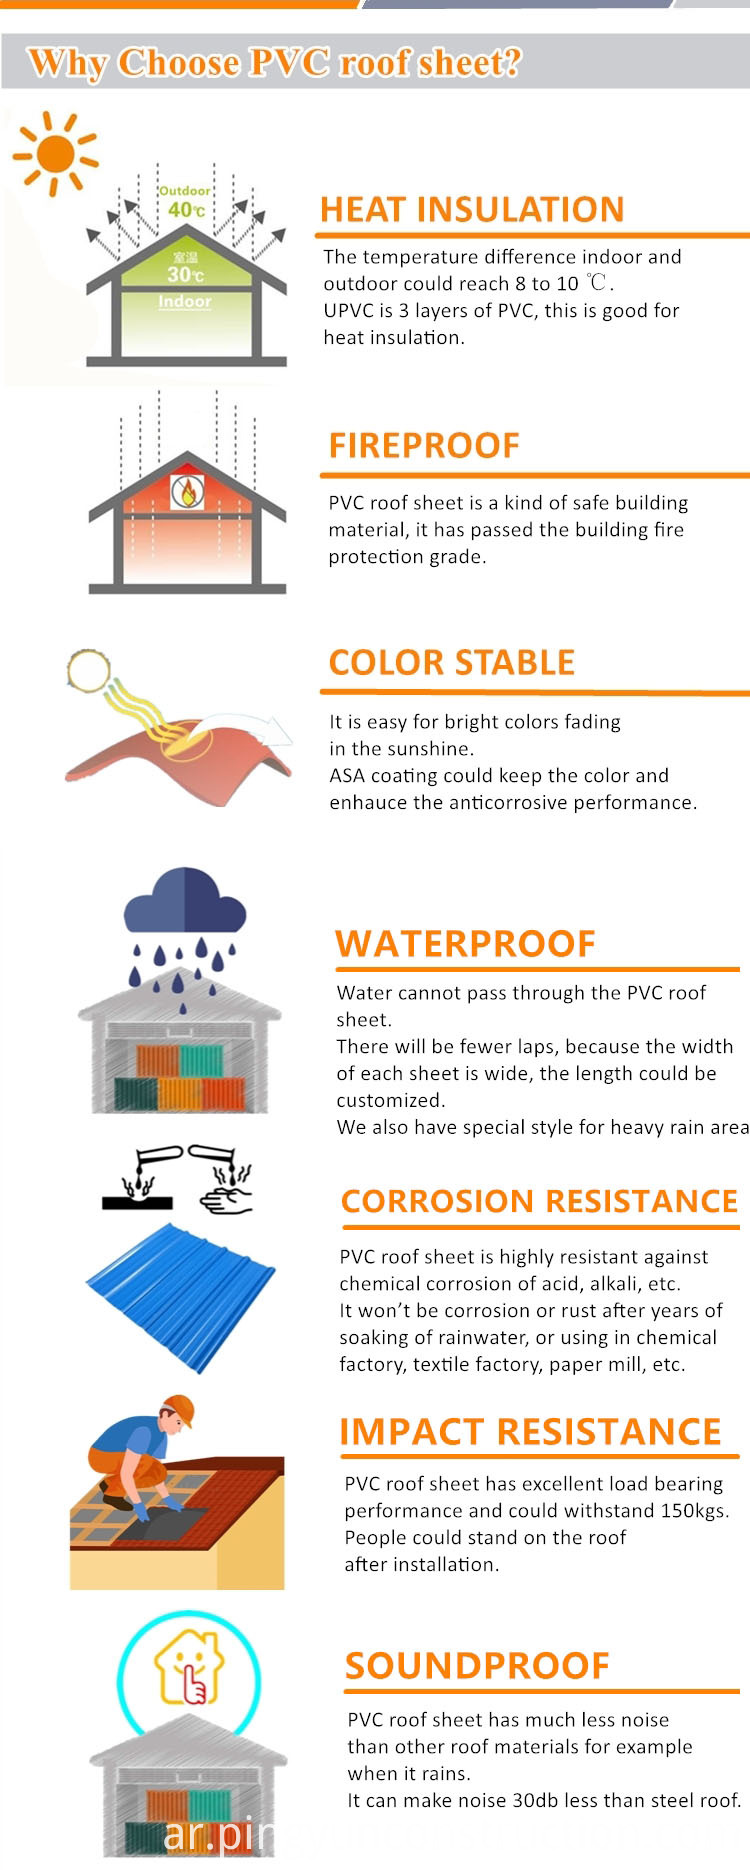 advantage of PVC roof tile